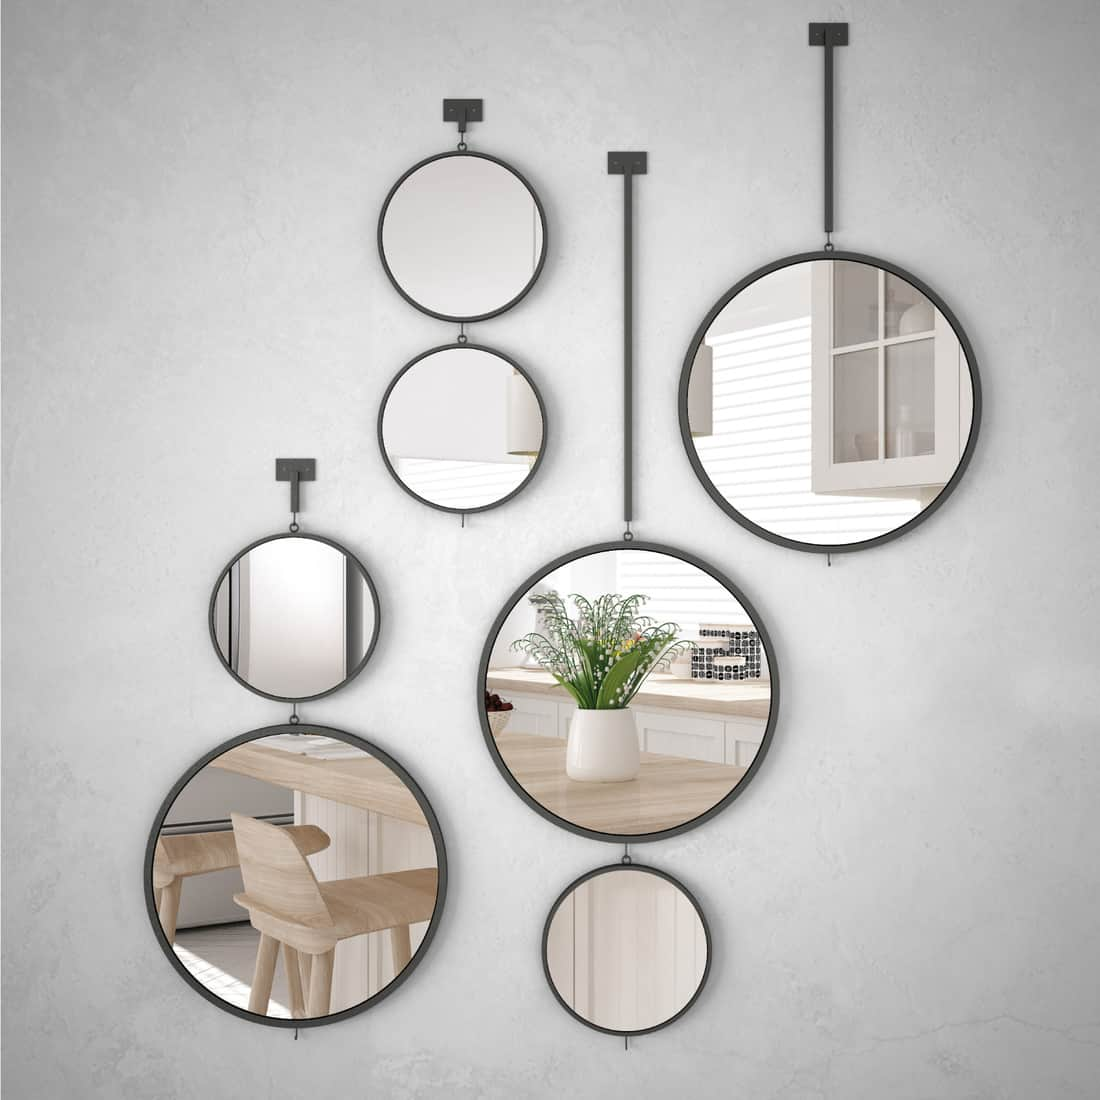 Round mirrors hanging on the wall reflecting interior design scene